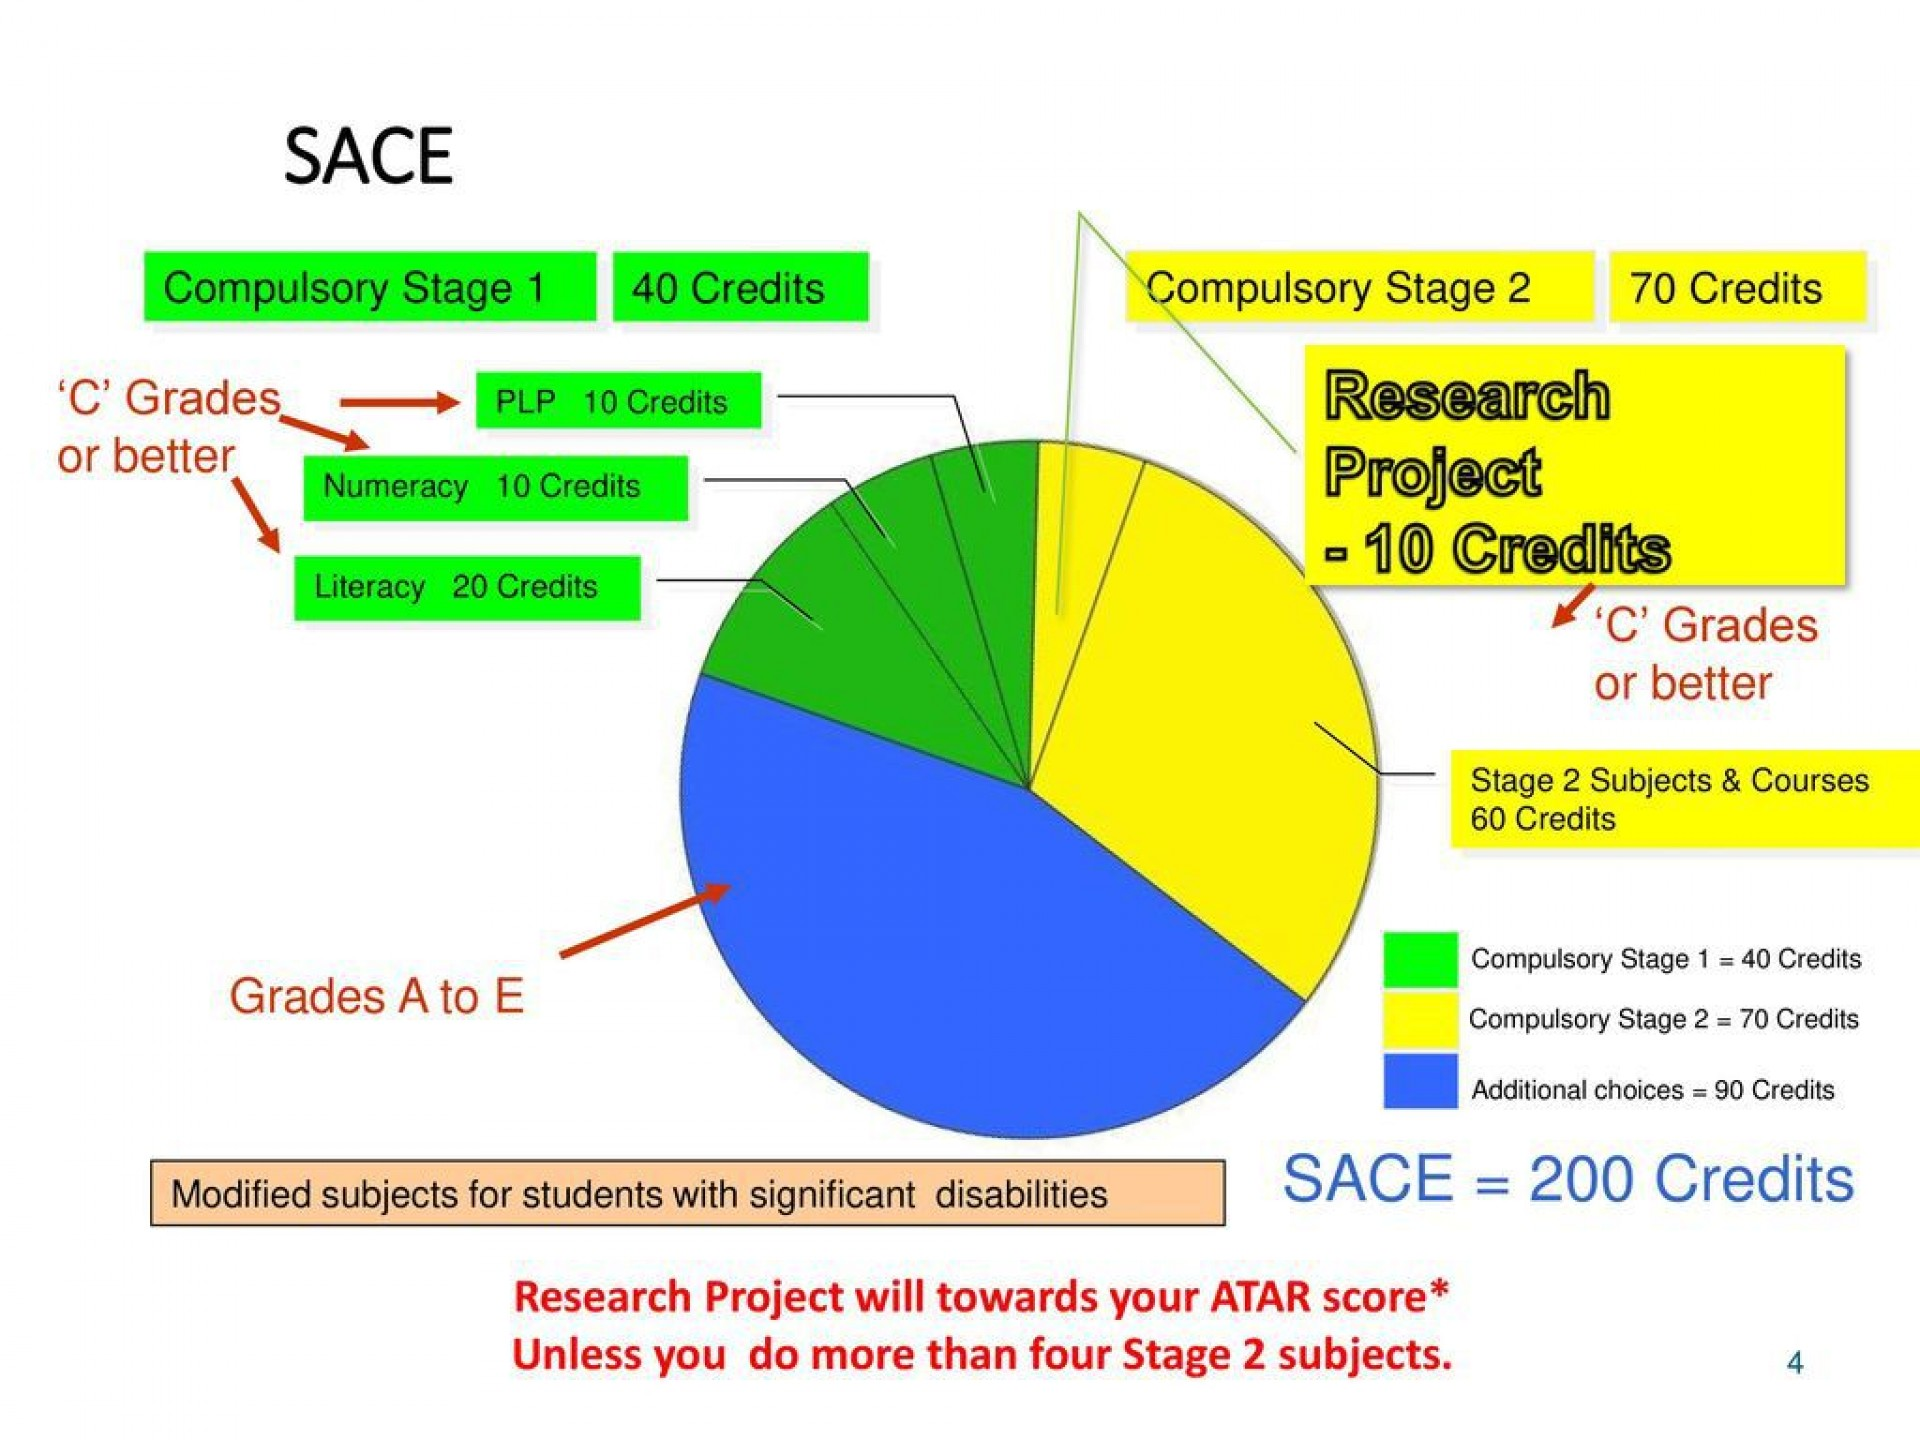 009 Outstanding Research Project Proposal Example Sace Picture 1920